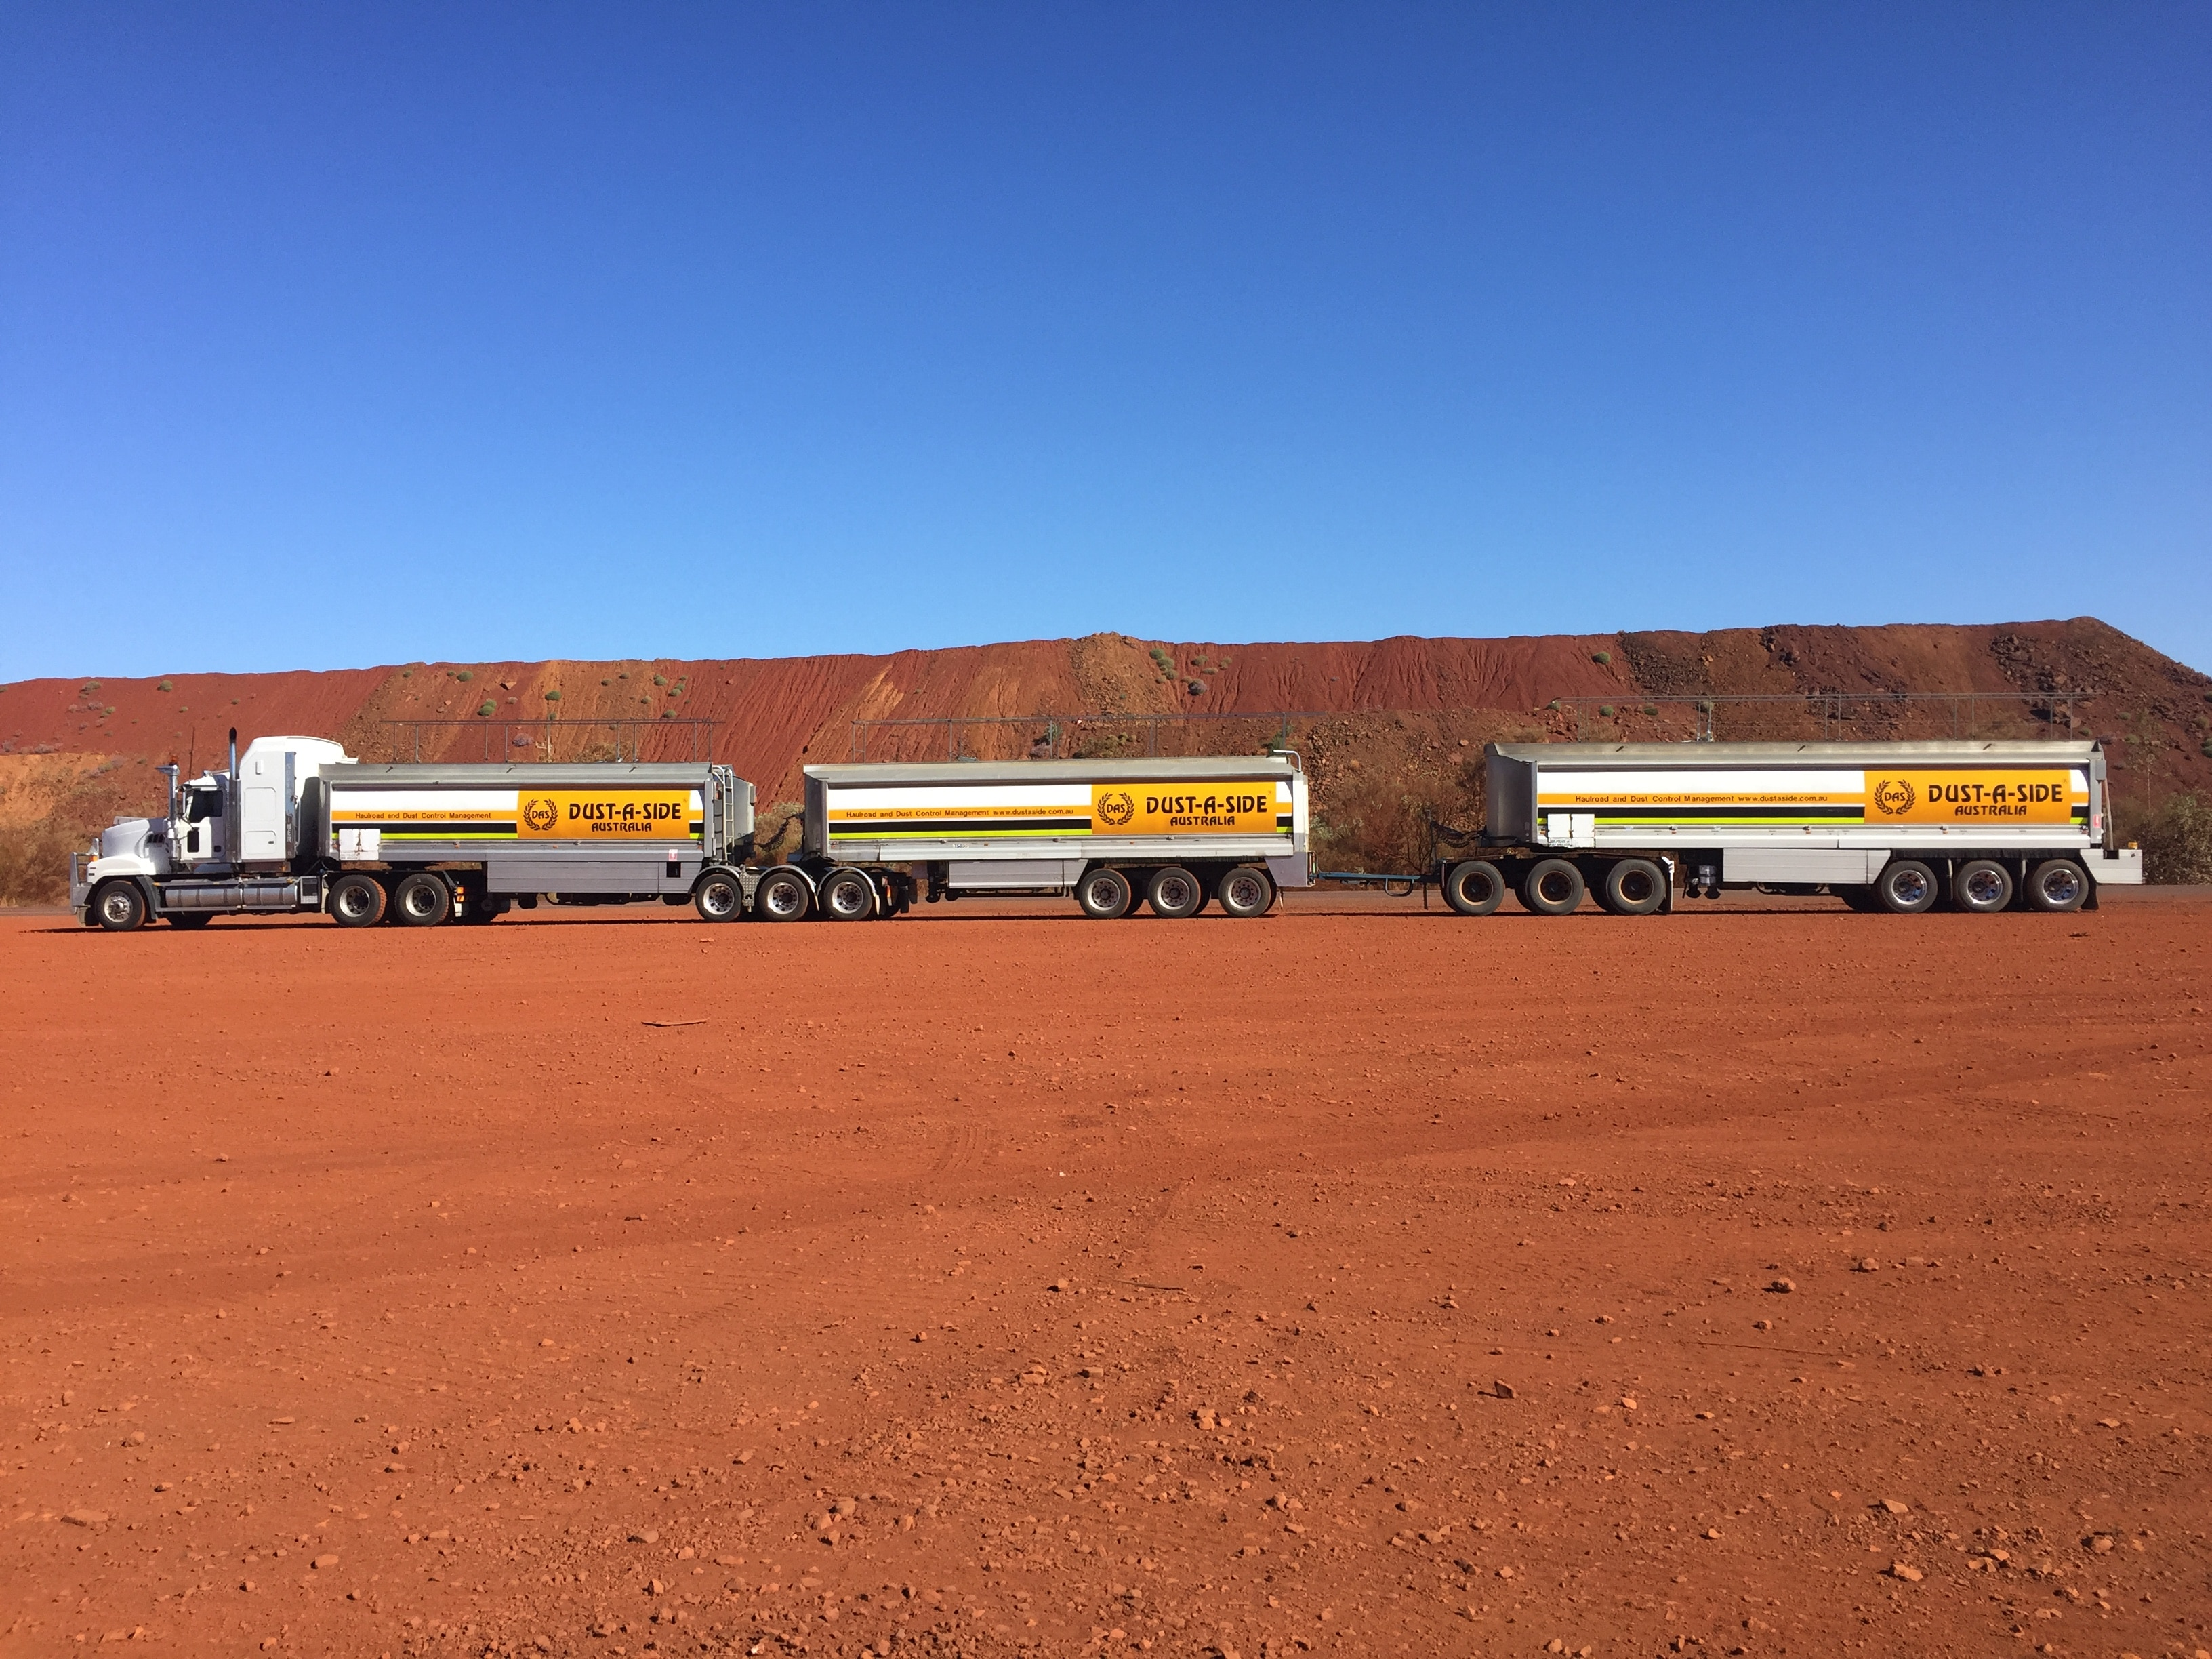 Dust products delivered by road train